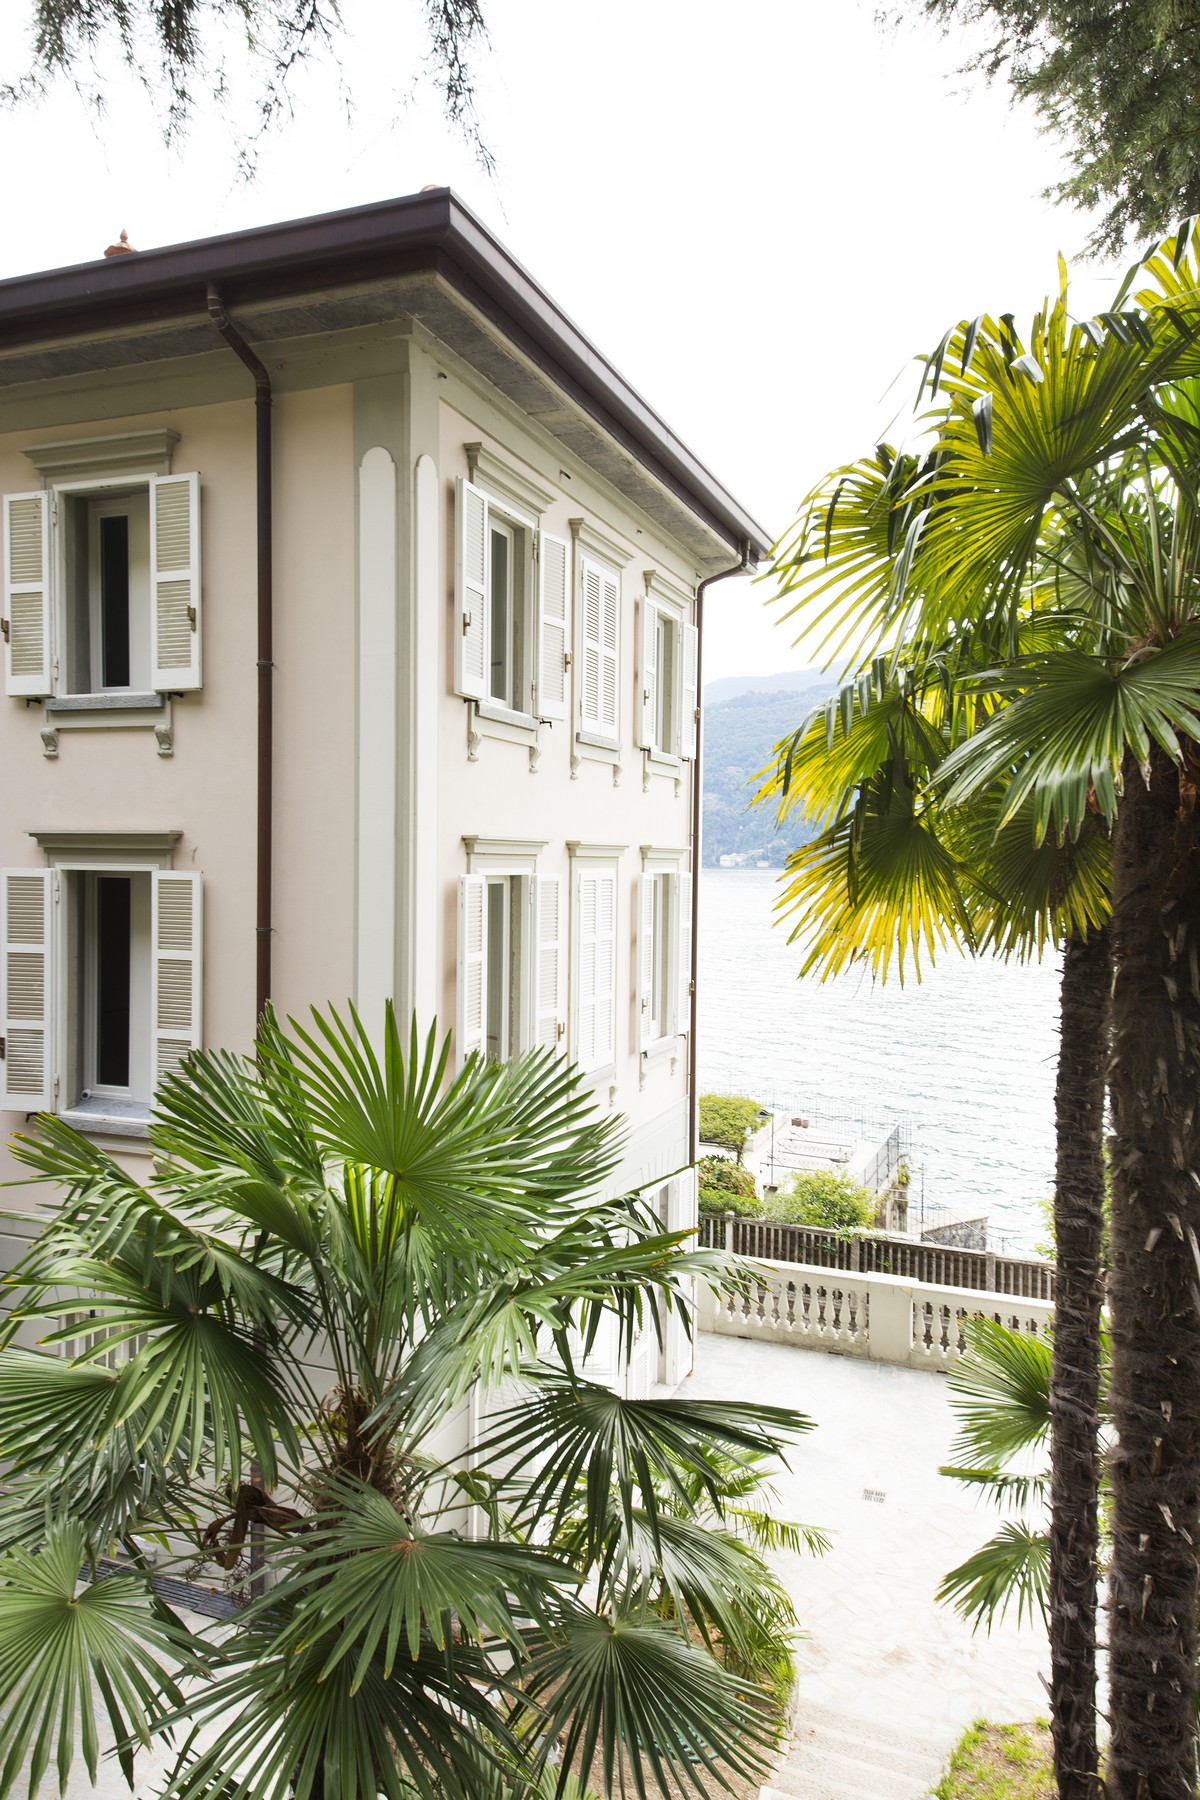 Single Family Home for Sale at Fantastic villa liberty pieds dans l'eau on Lake Como Via Regina Vecchia Carate Urio, 22010 Italy